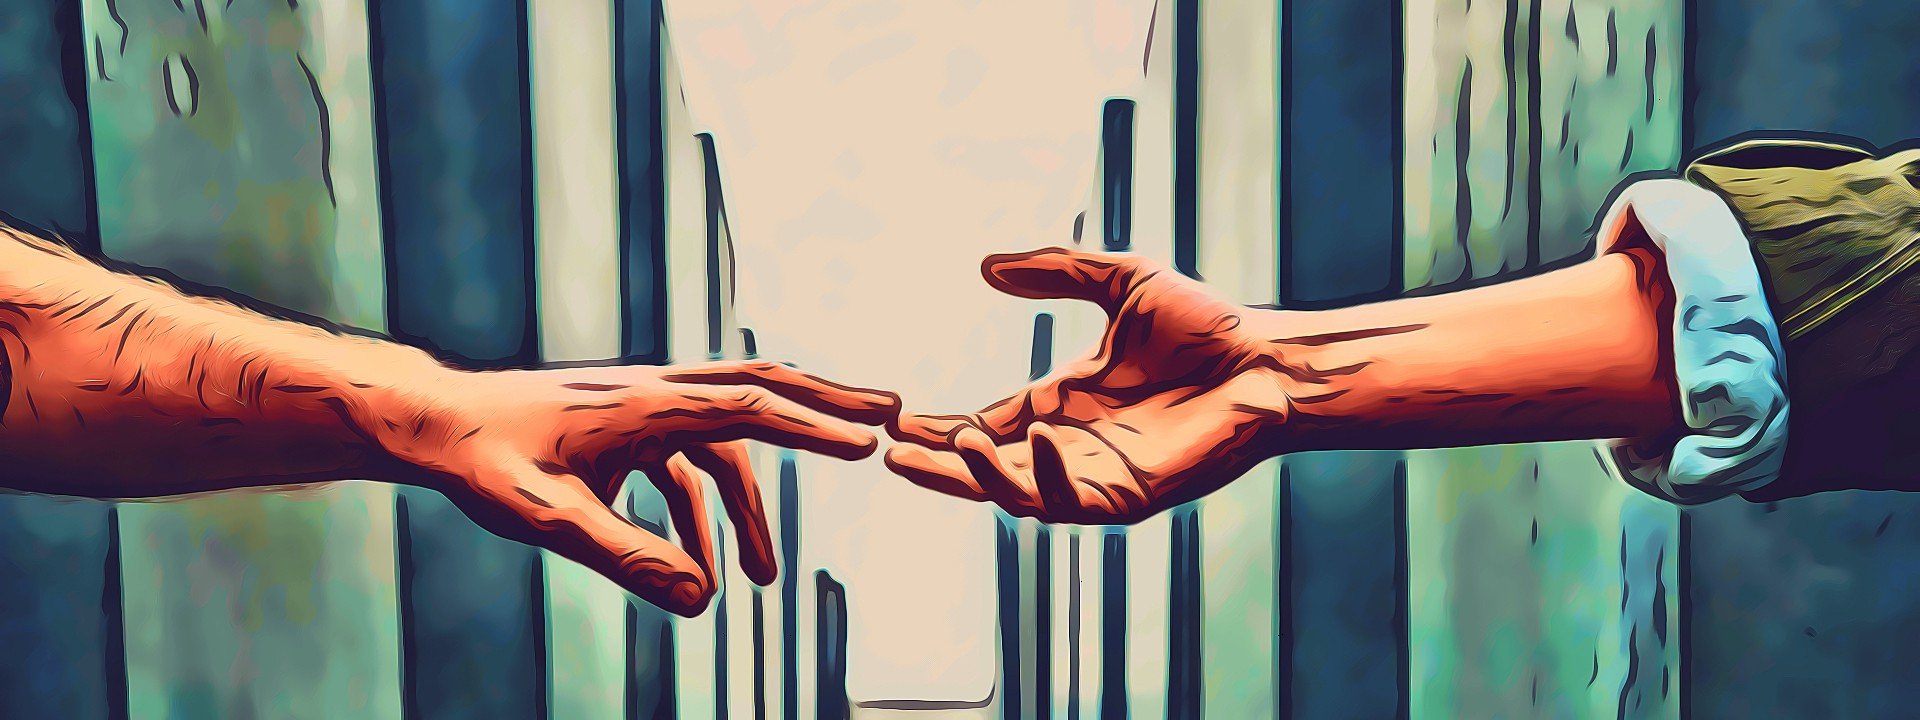 Two hands stretching toward each other, but not touching